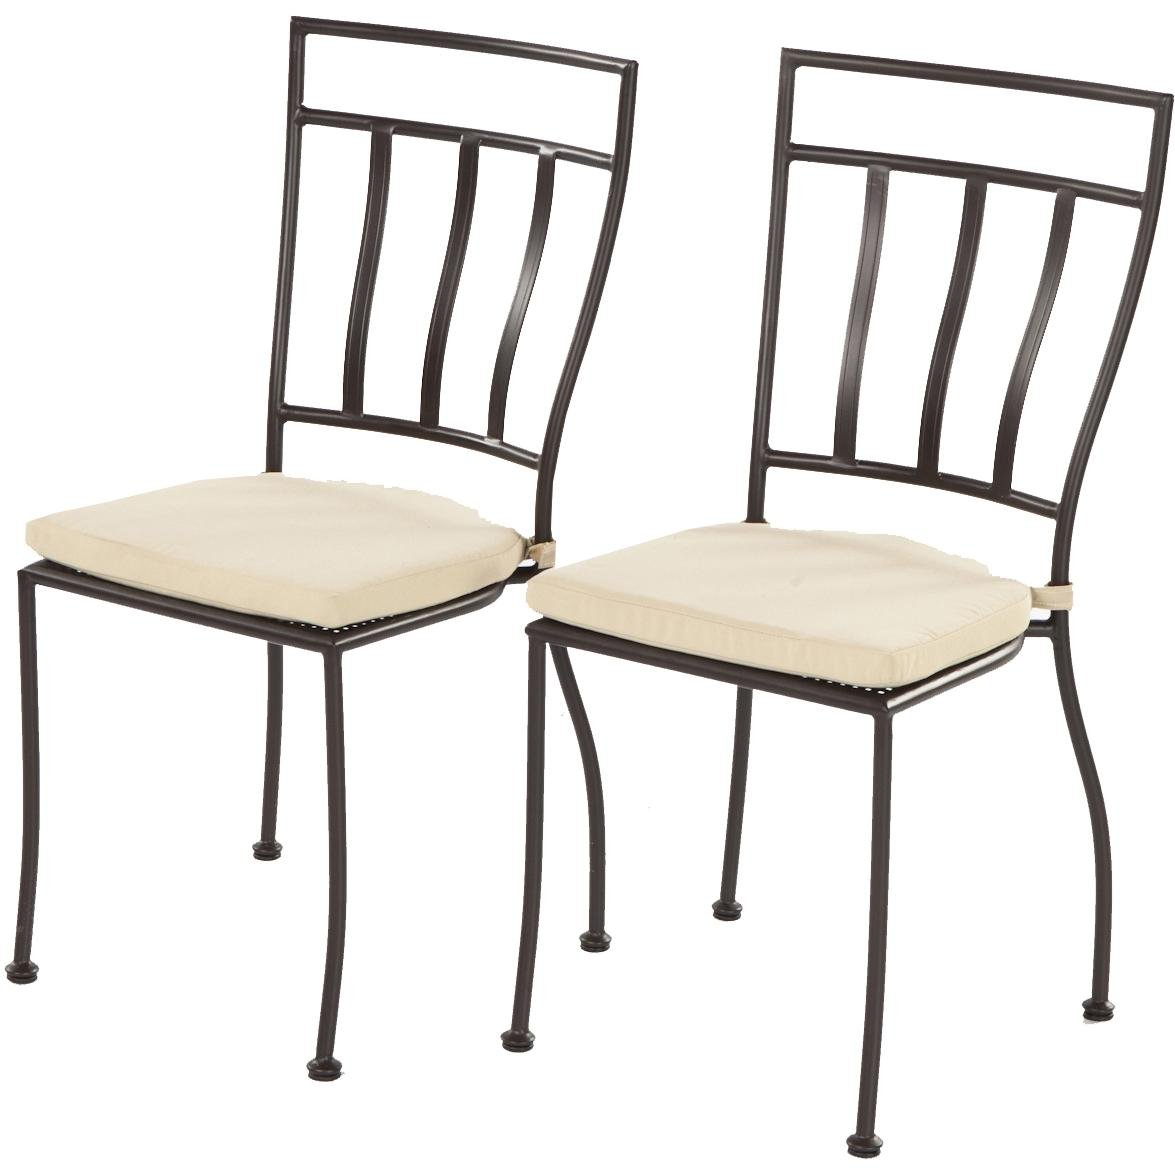 Amazon.com : Alfresco Home Semplice Wrought Iron Bistro Chair With Cushion,  Charcoal Finish : Dining Chairs : Garden U0026 Outdoor